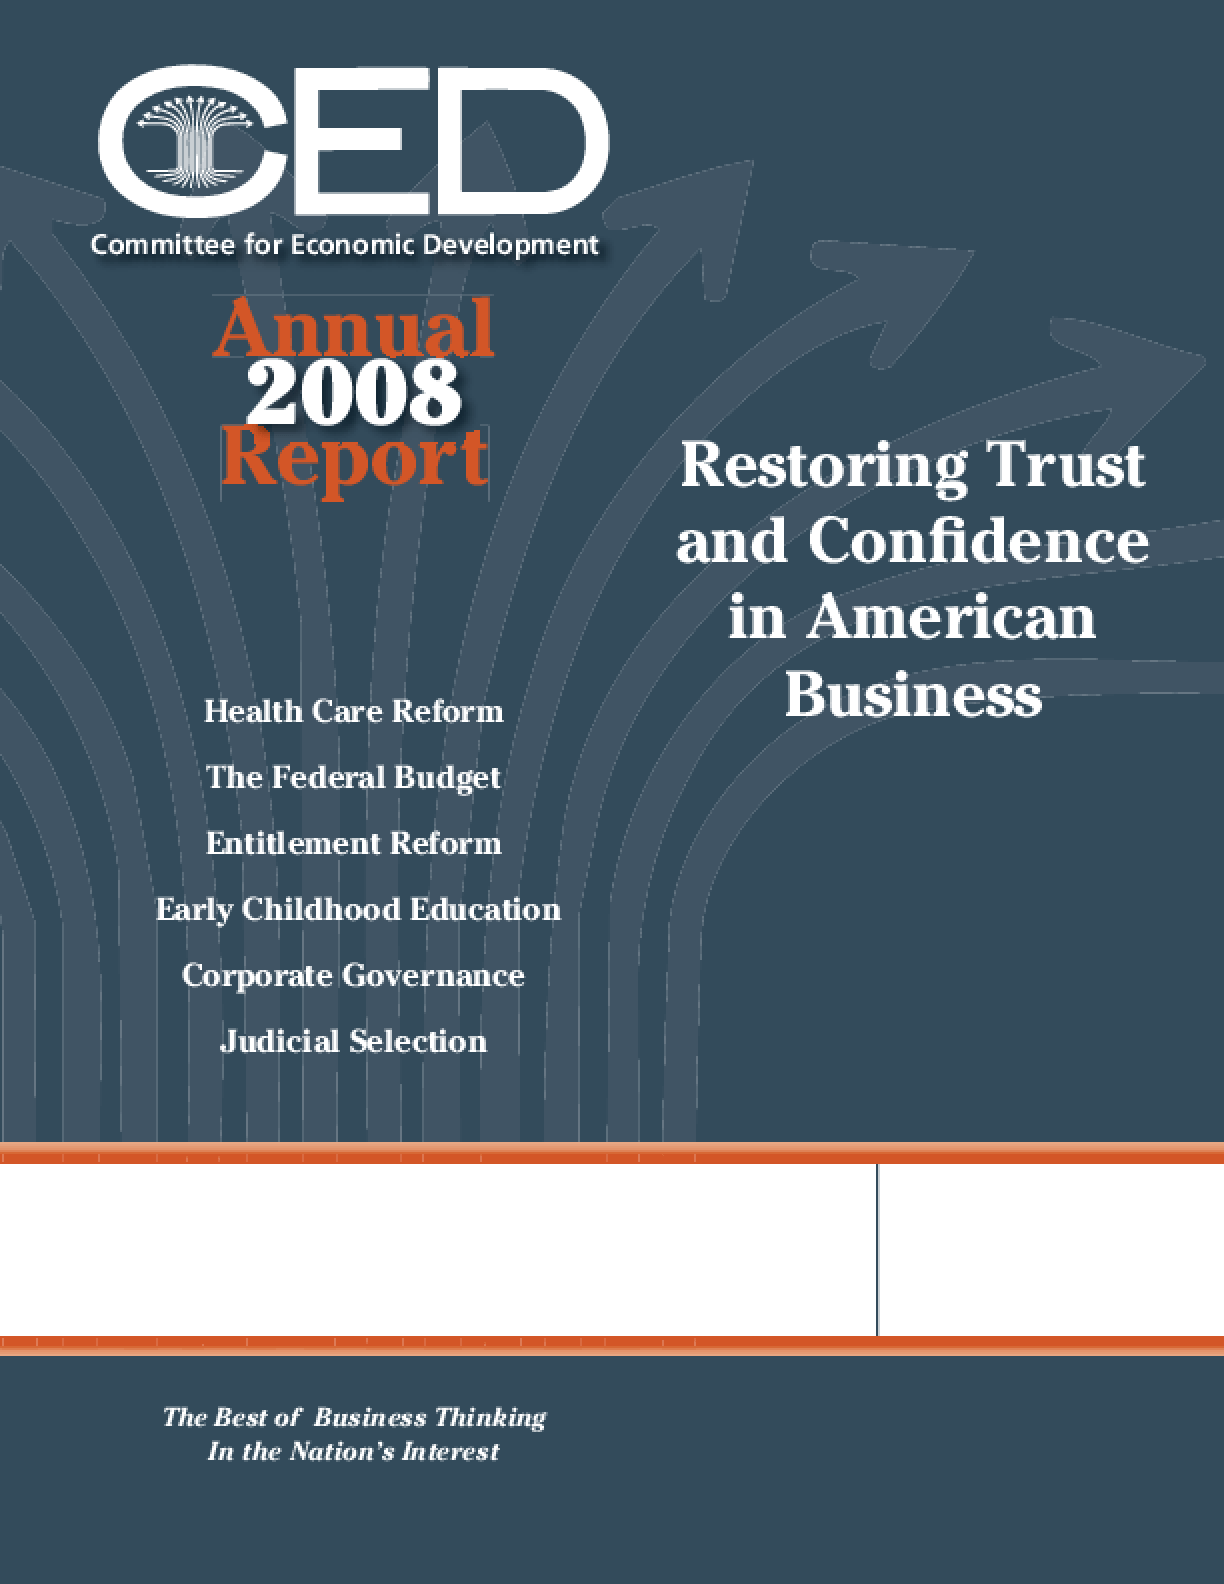 CED's 2008 Annual Report